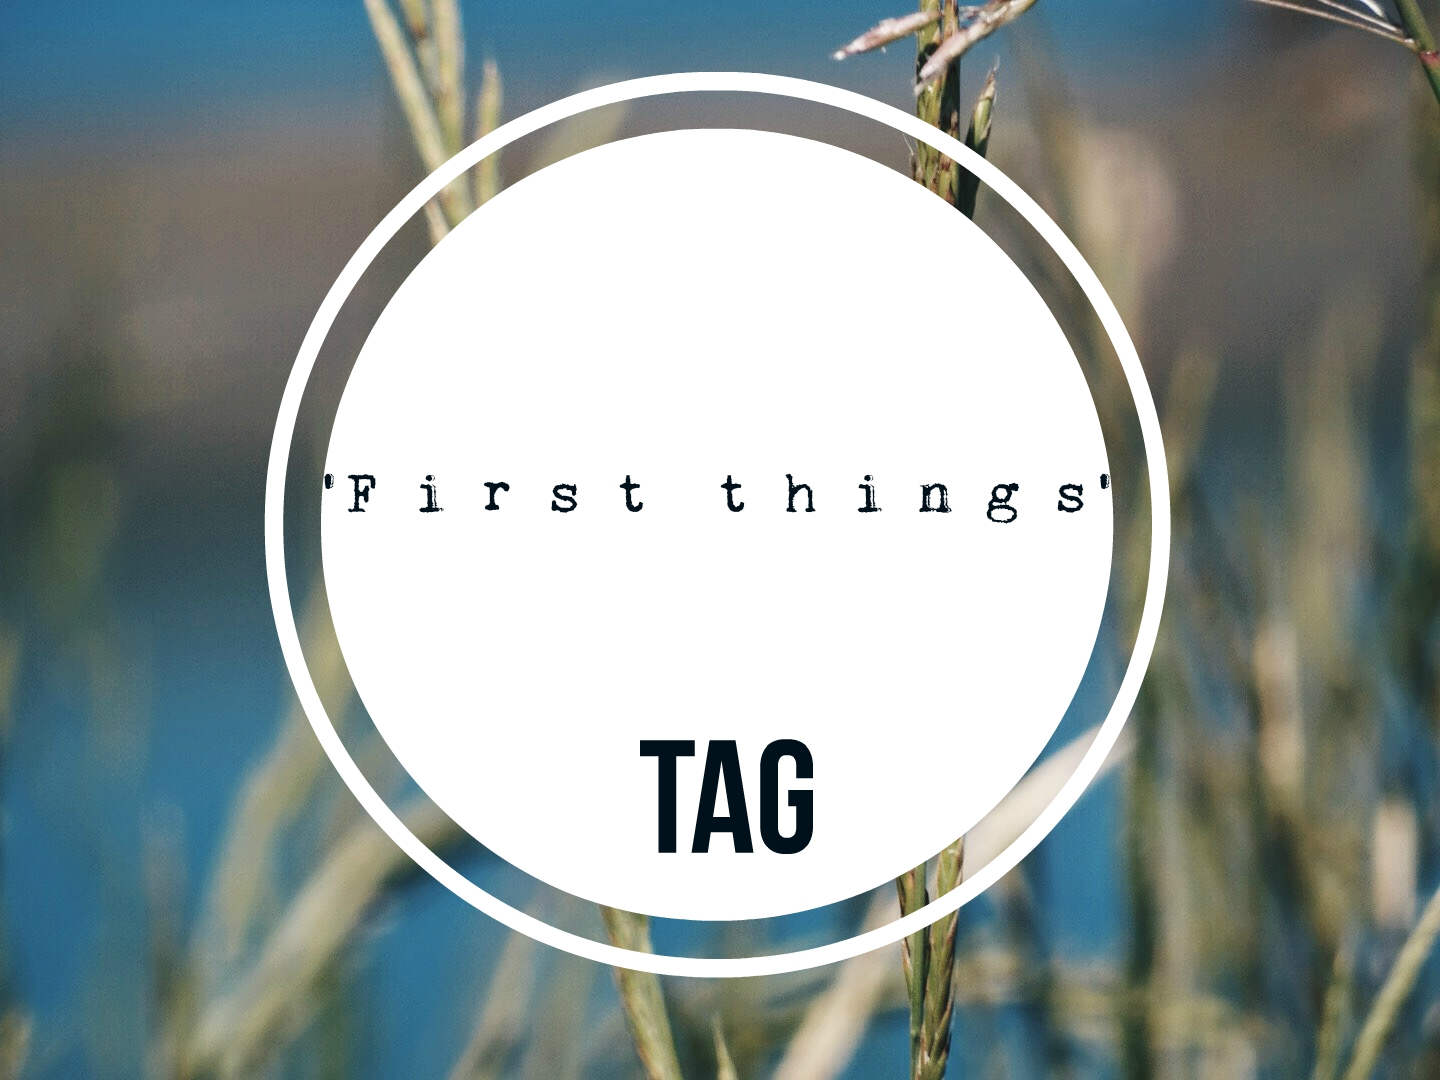 'First things' tag